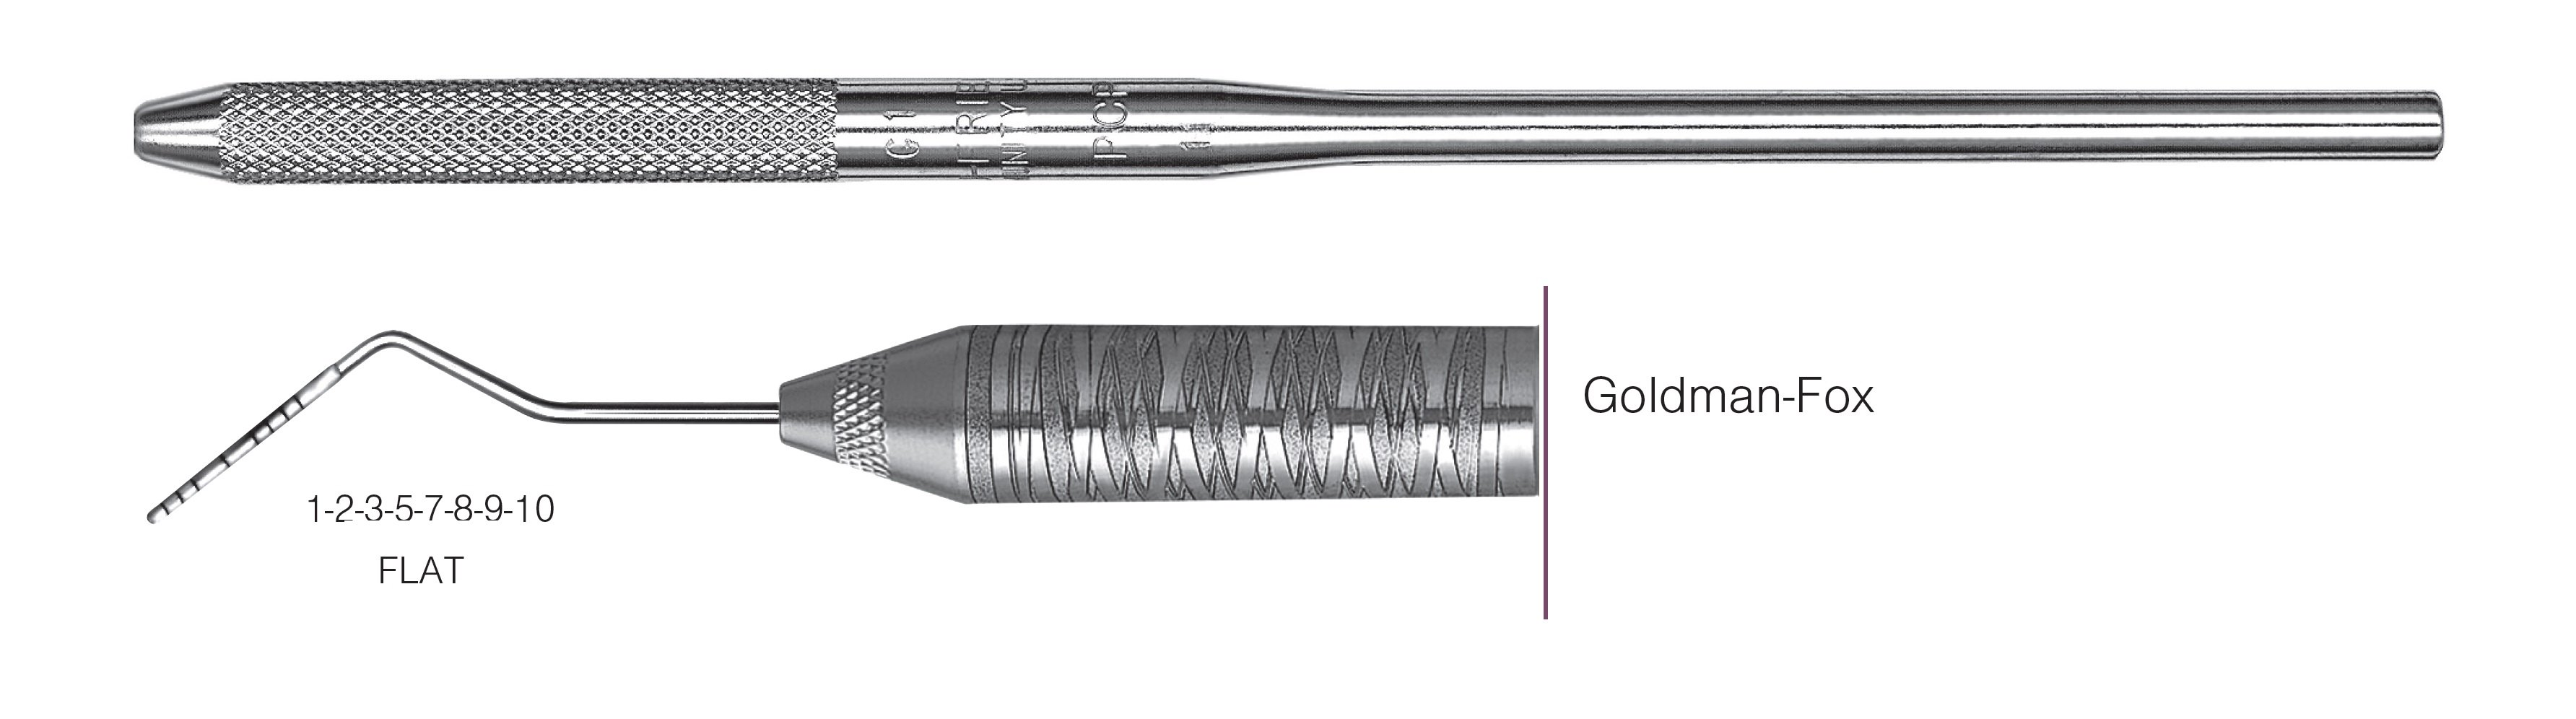 HF-PGF6-30, SINGLE-ENDED PROBES Goldman-Fox, Goldman-Fox probes feature a flat working end for easier insertion on lingual or facial surfaces, Black markings, 1-2-3-5-7-8-9-10 mm FLAT, Handle round, Single End